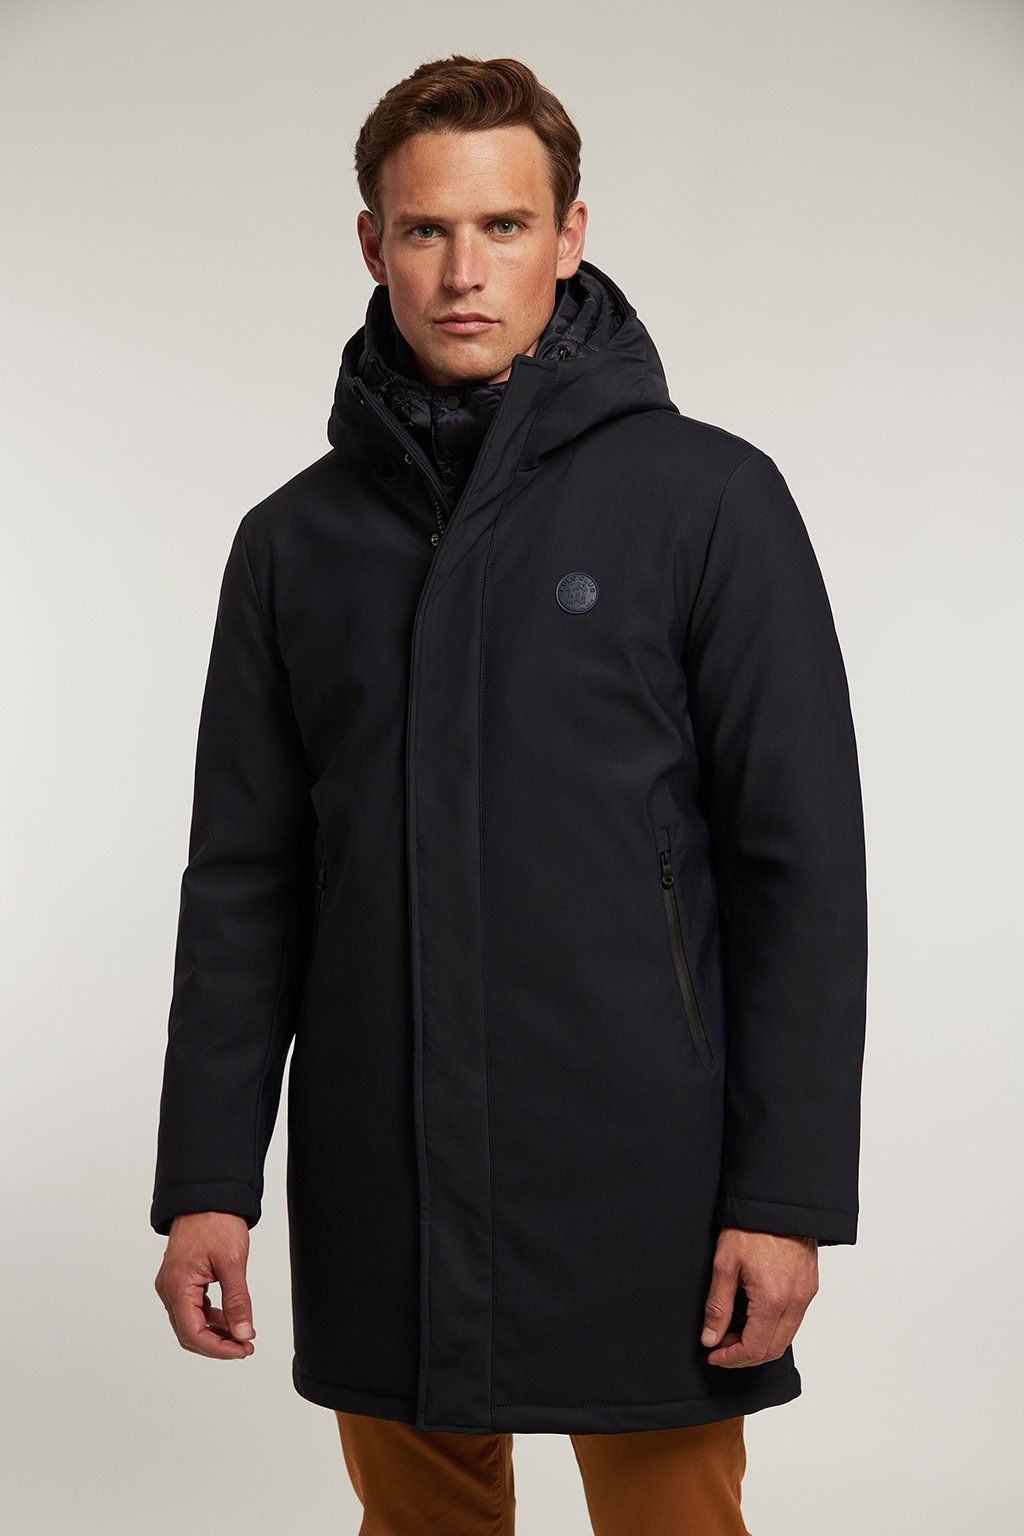 Navy blue technical coat with quilted lining